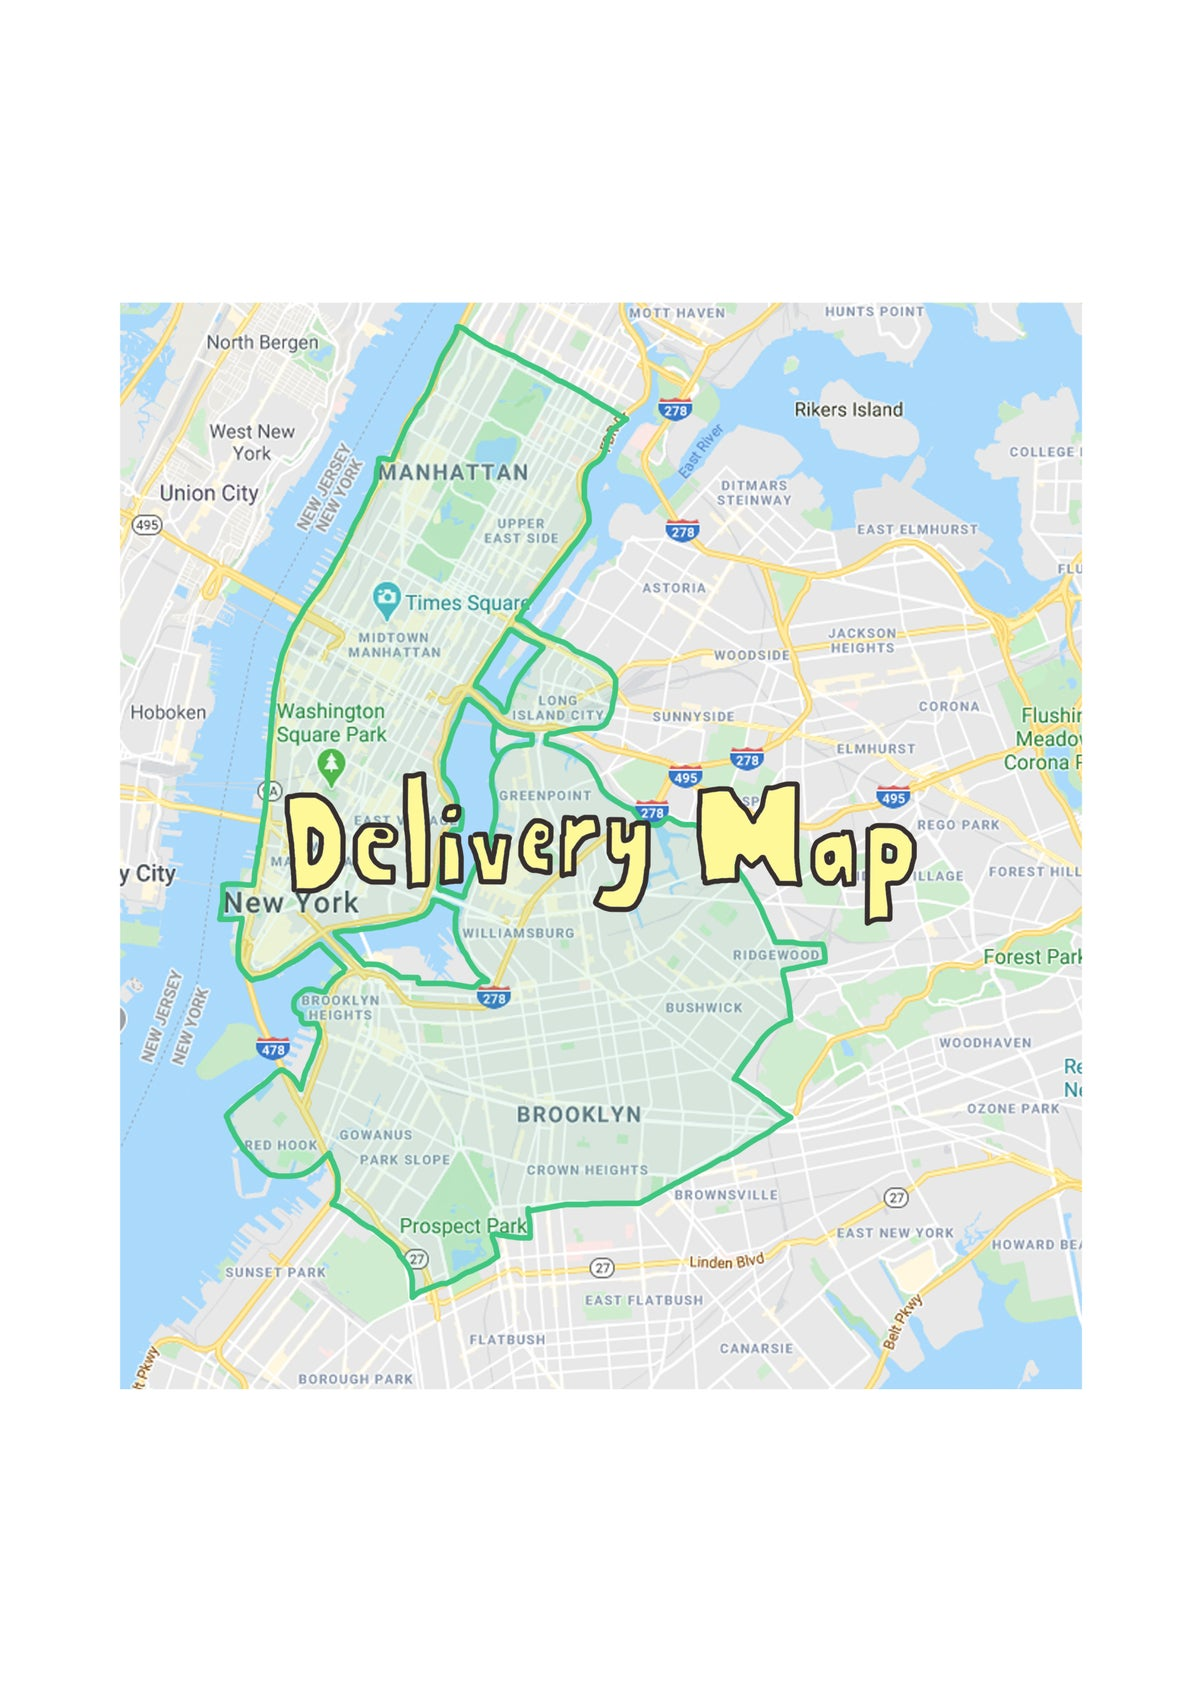 Image of Delivery Zone Map